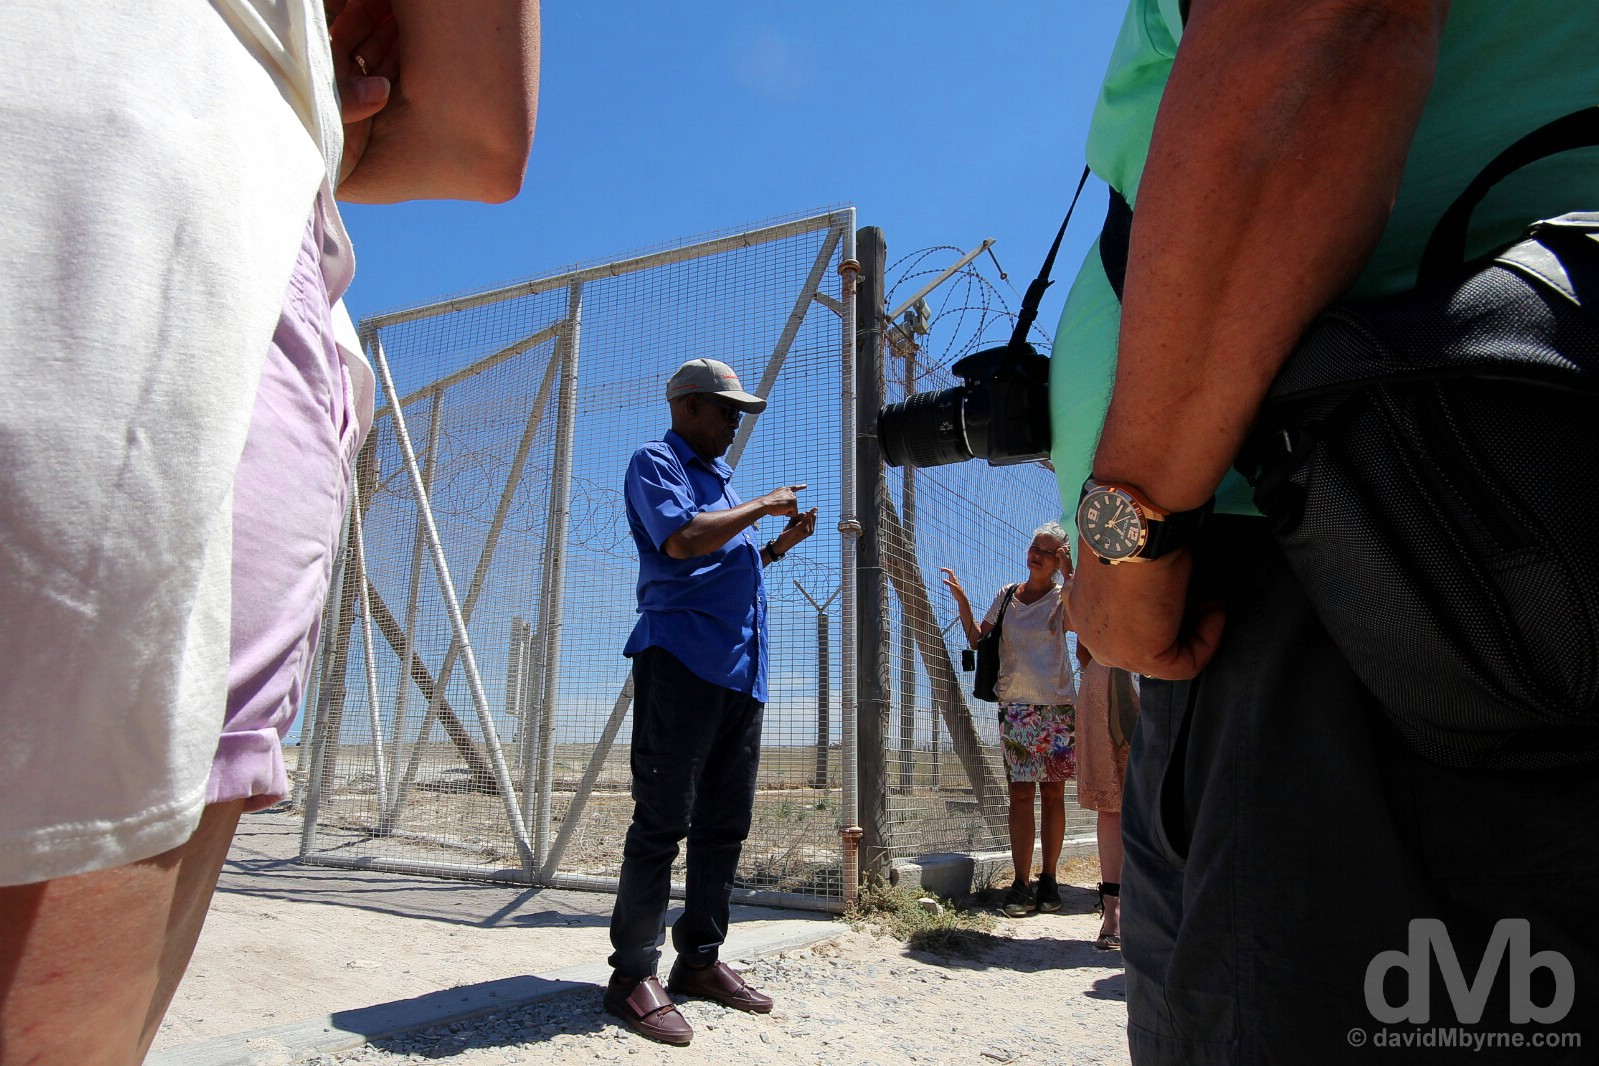 A briefing by an ex-prisoner turned guide at the entrance to the prison on Robben Island, Table Bay, Western Cape, South Africa. February 22, 2017.